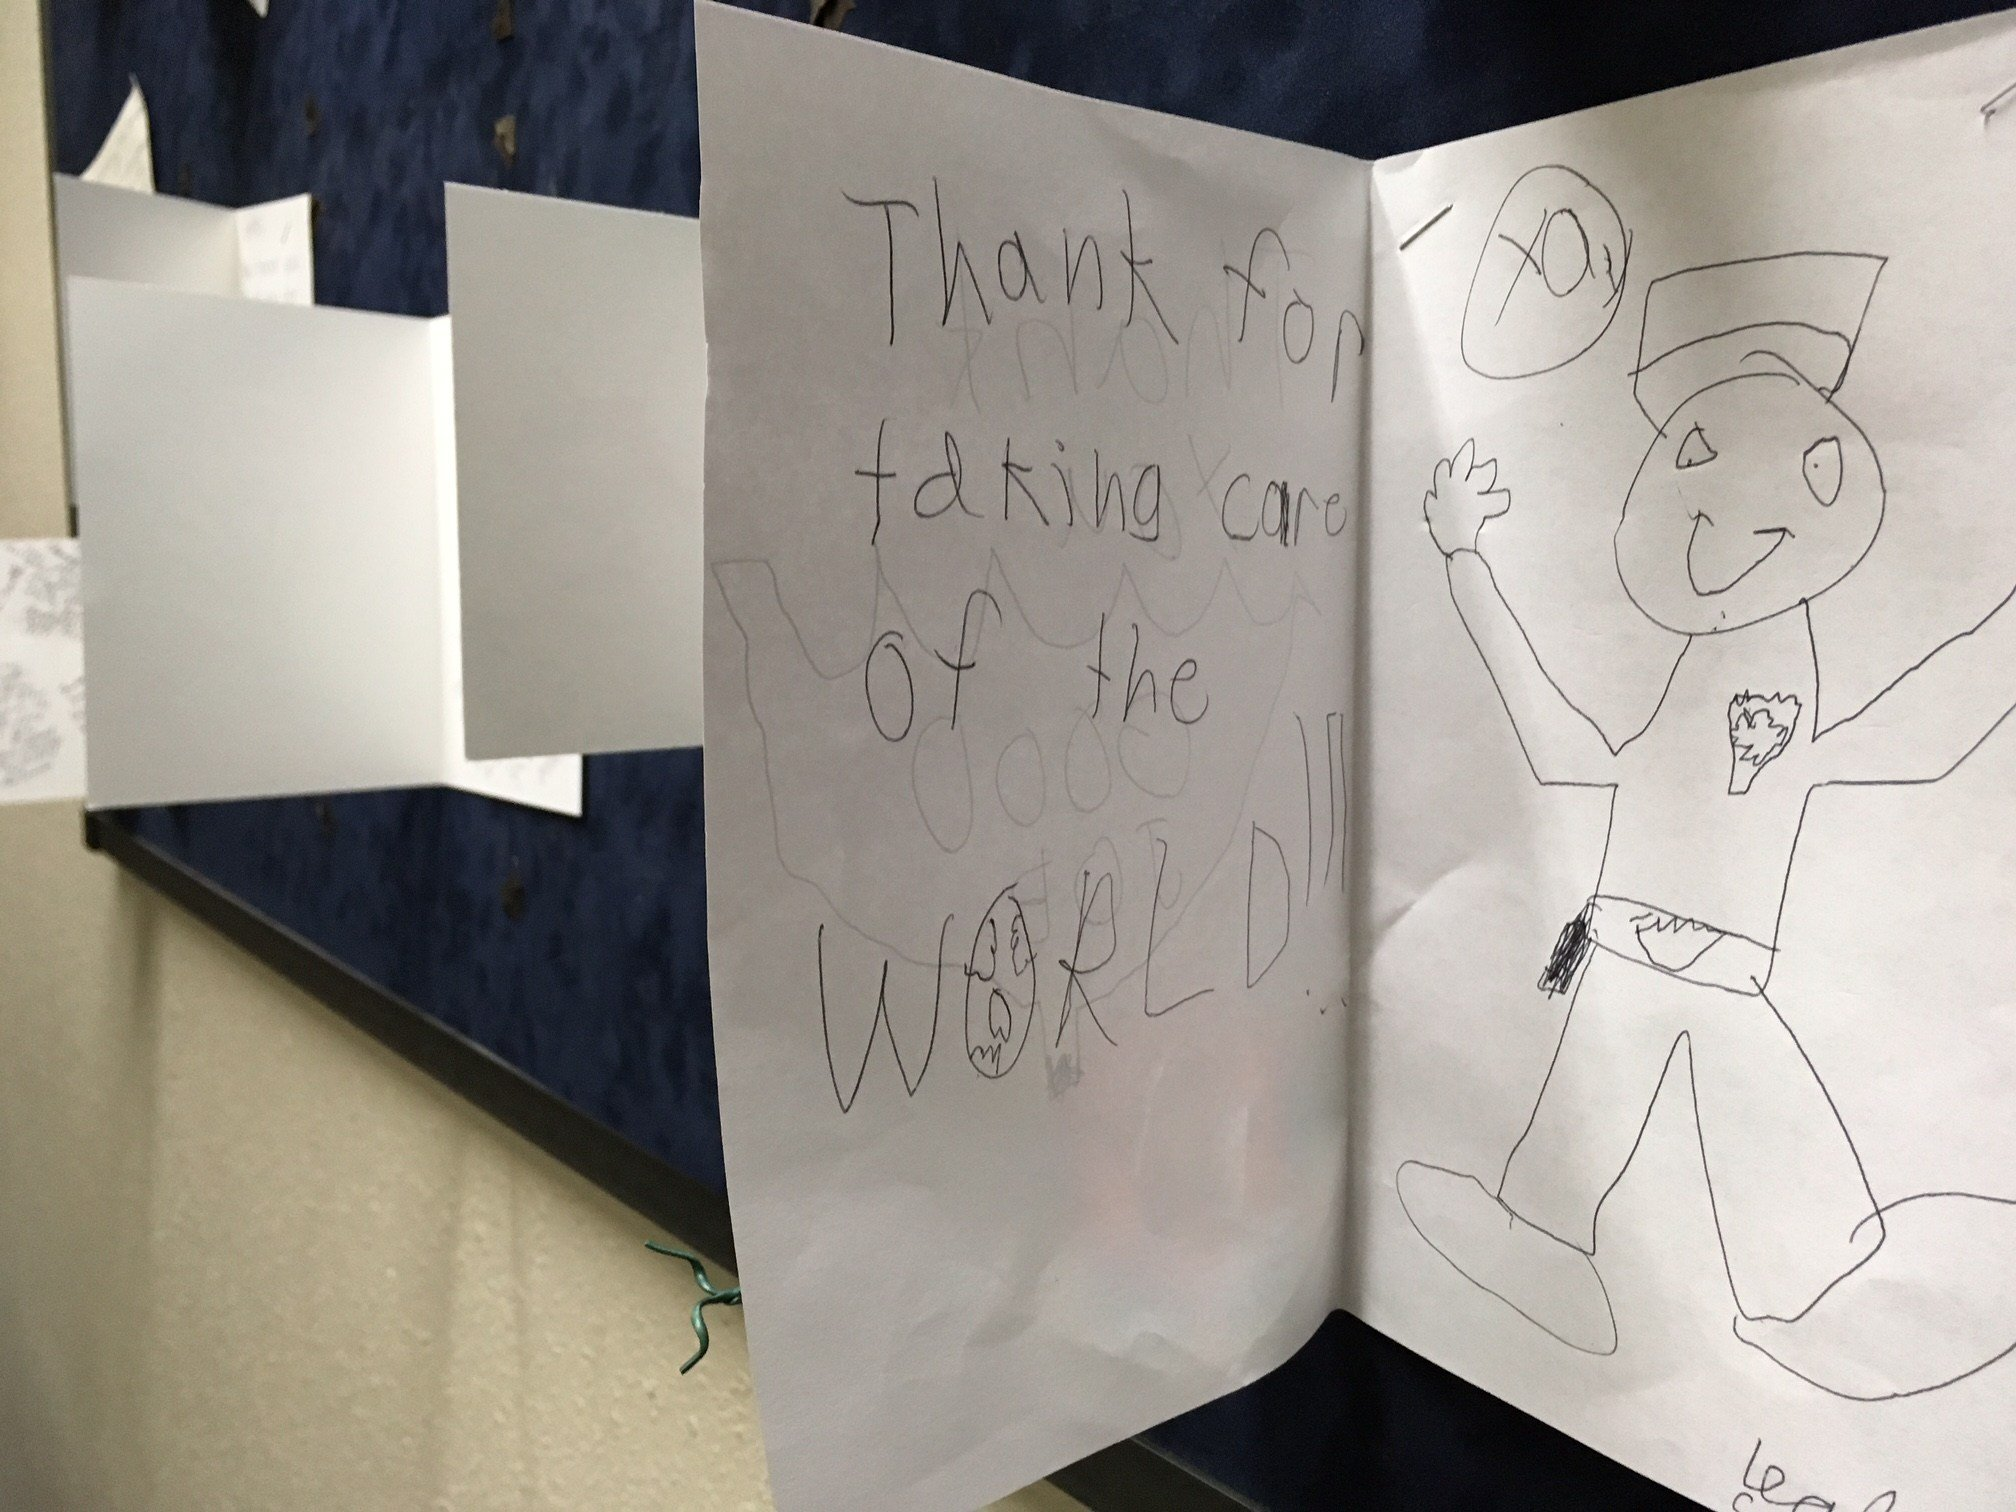 One of the notes sent in to Gresham Police. (KPTV)